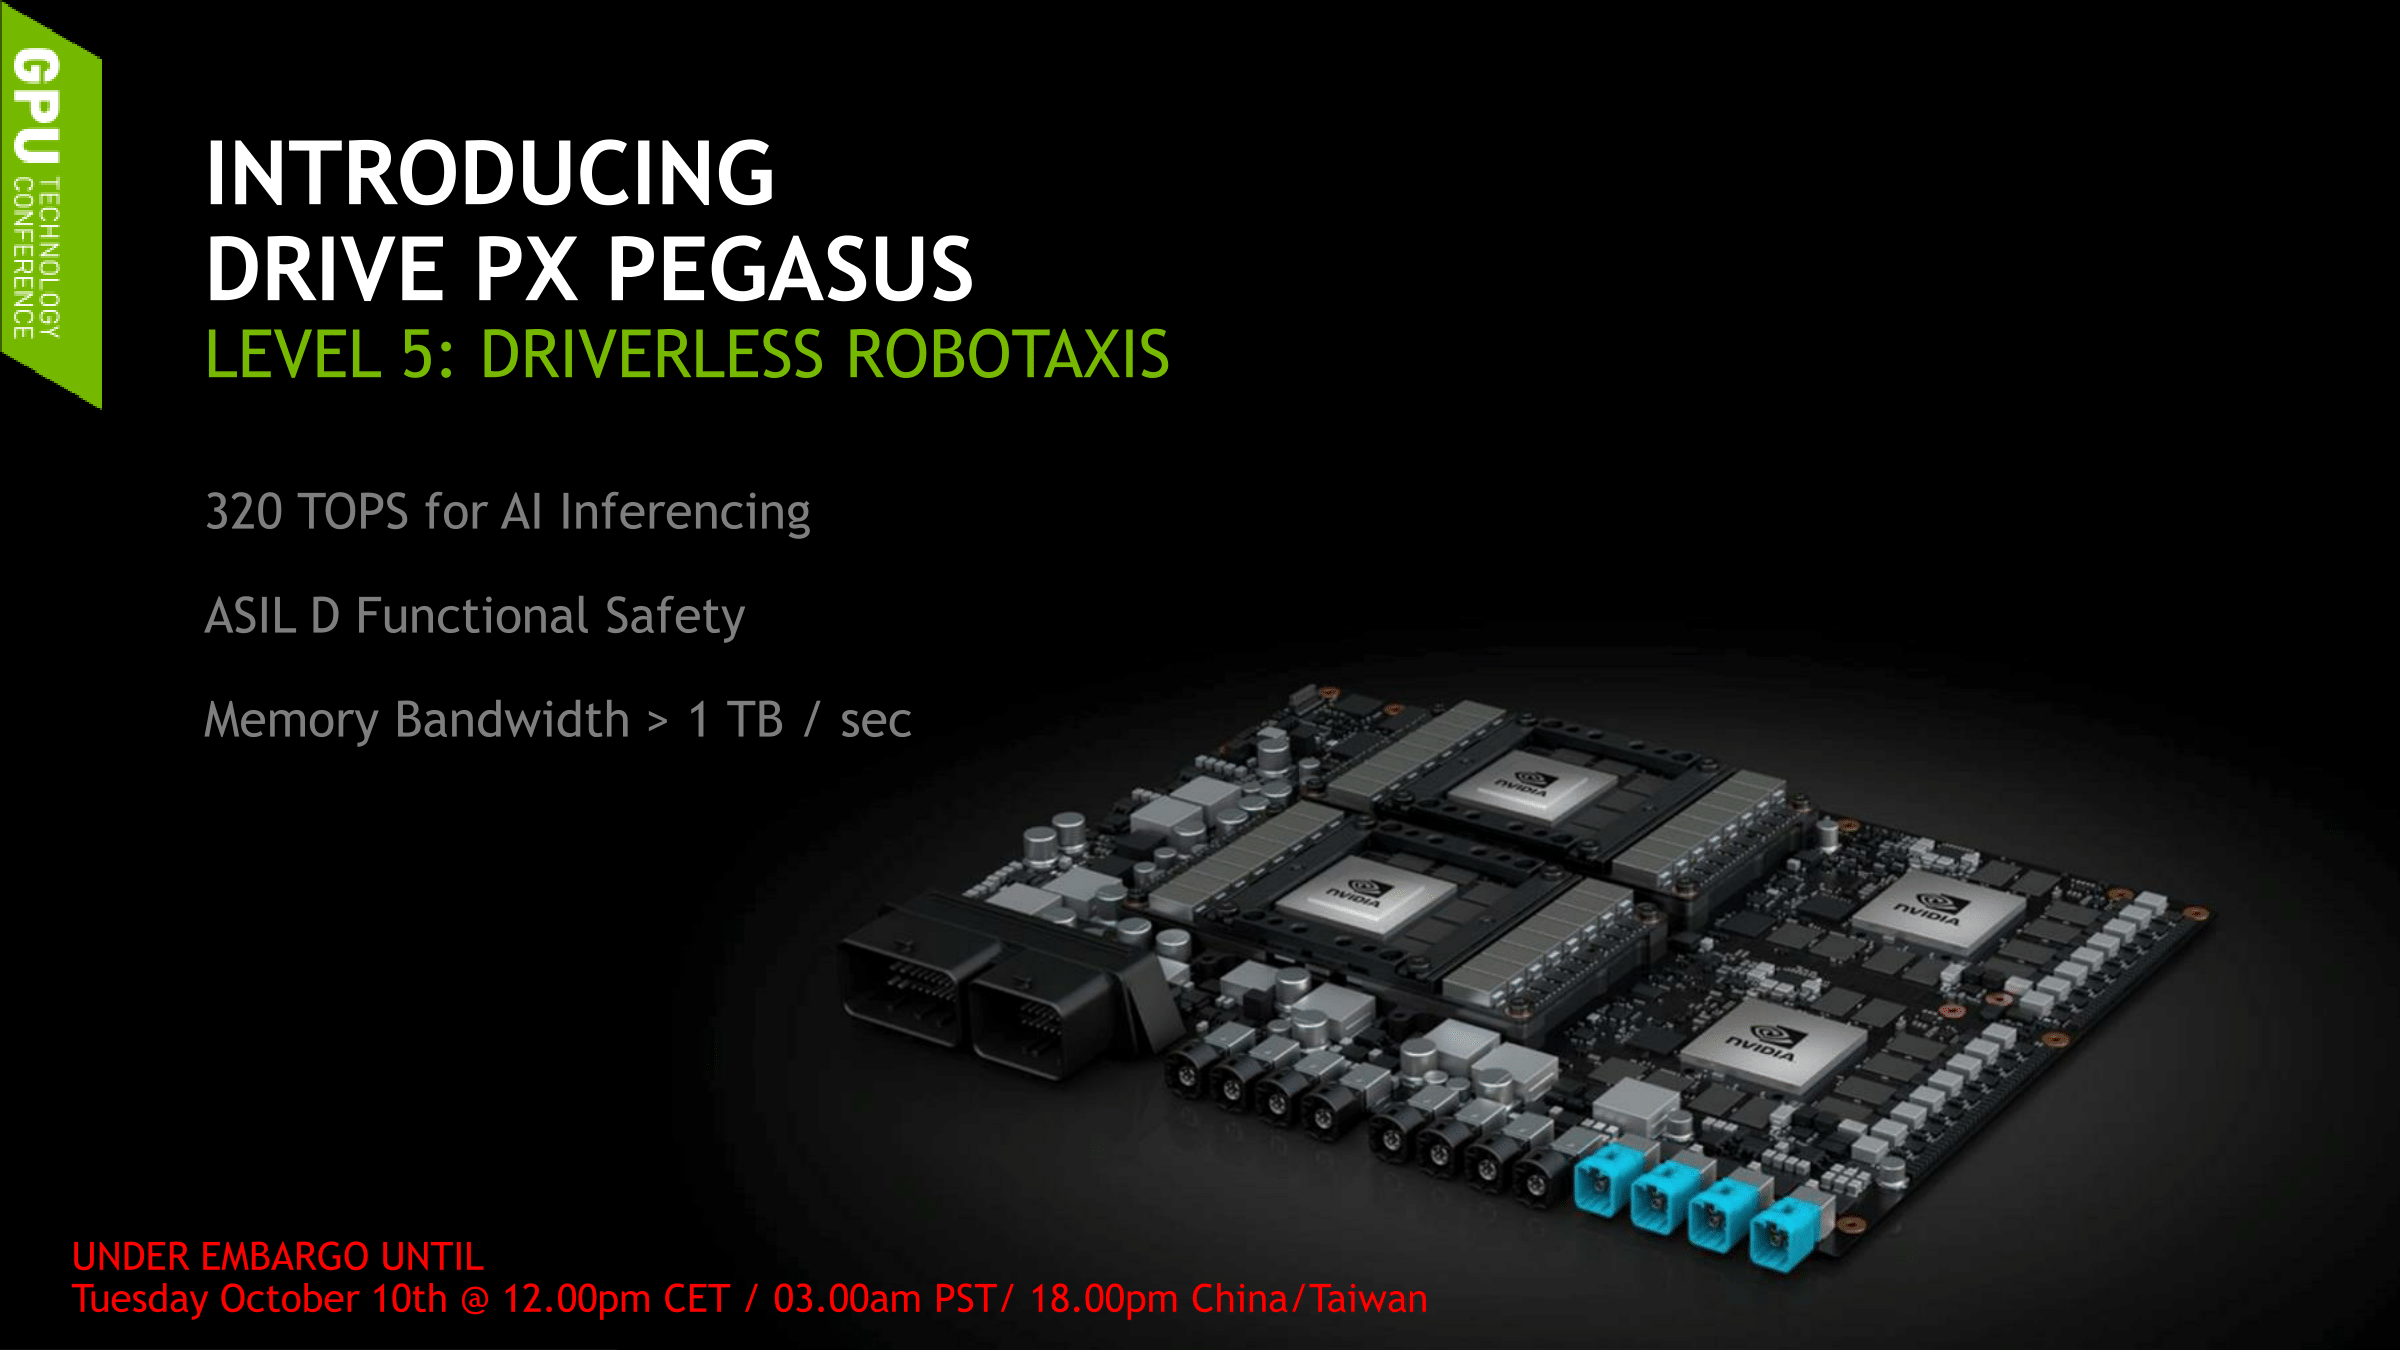 Nvidia's new Pegasus chip targets tomorrow's fully autonomous vehicles